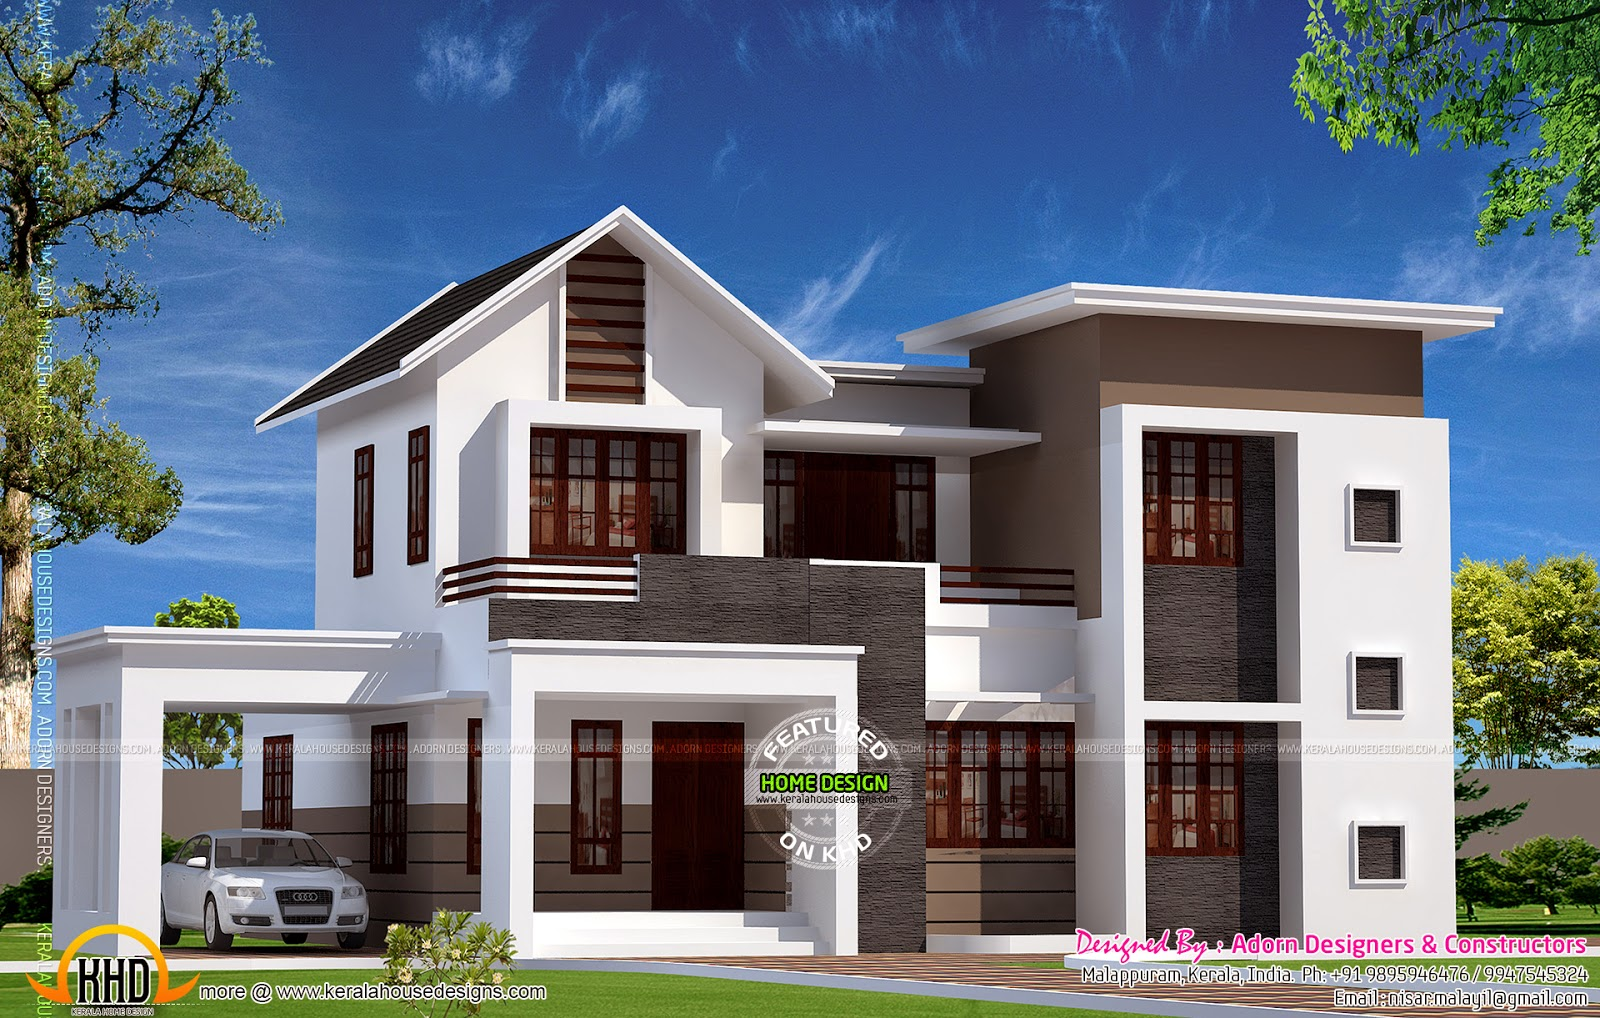 New house design in 1900 sq feet kerala home design and for Blue print homes